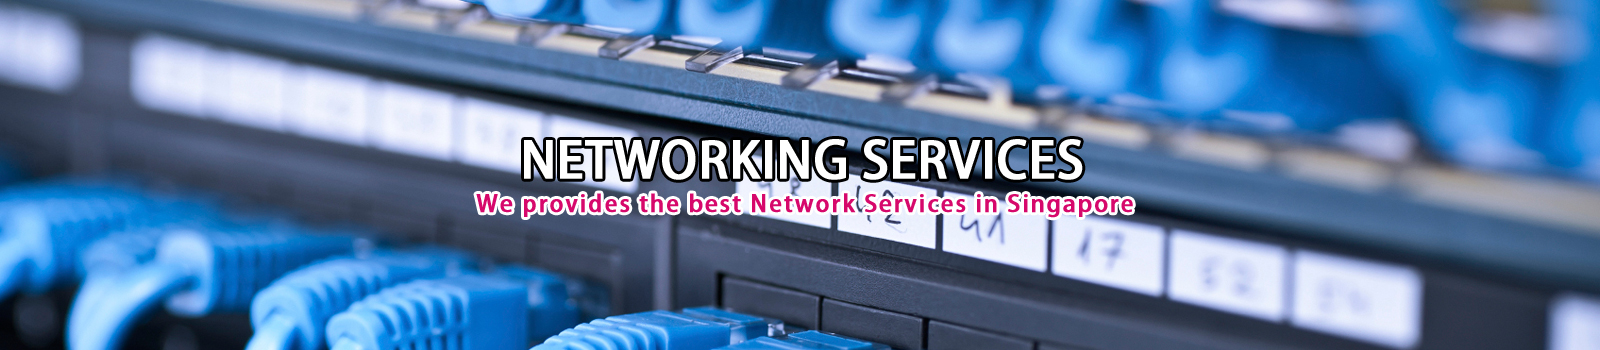 Network cabling Services Networking services